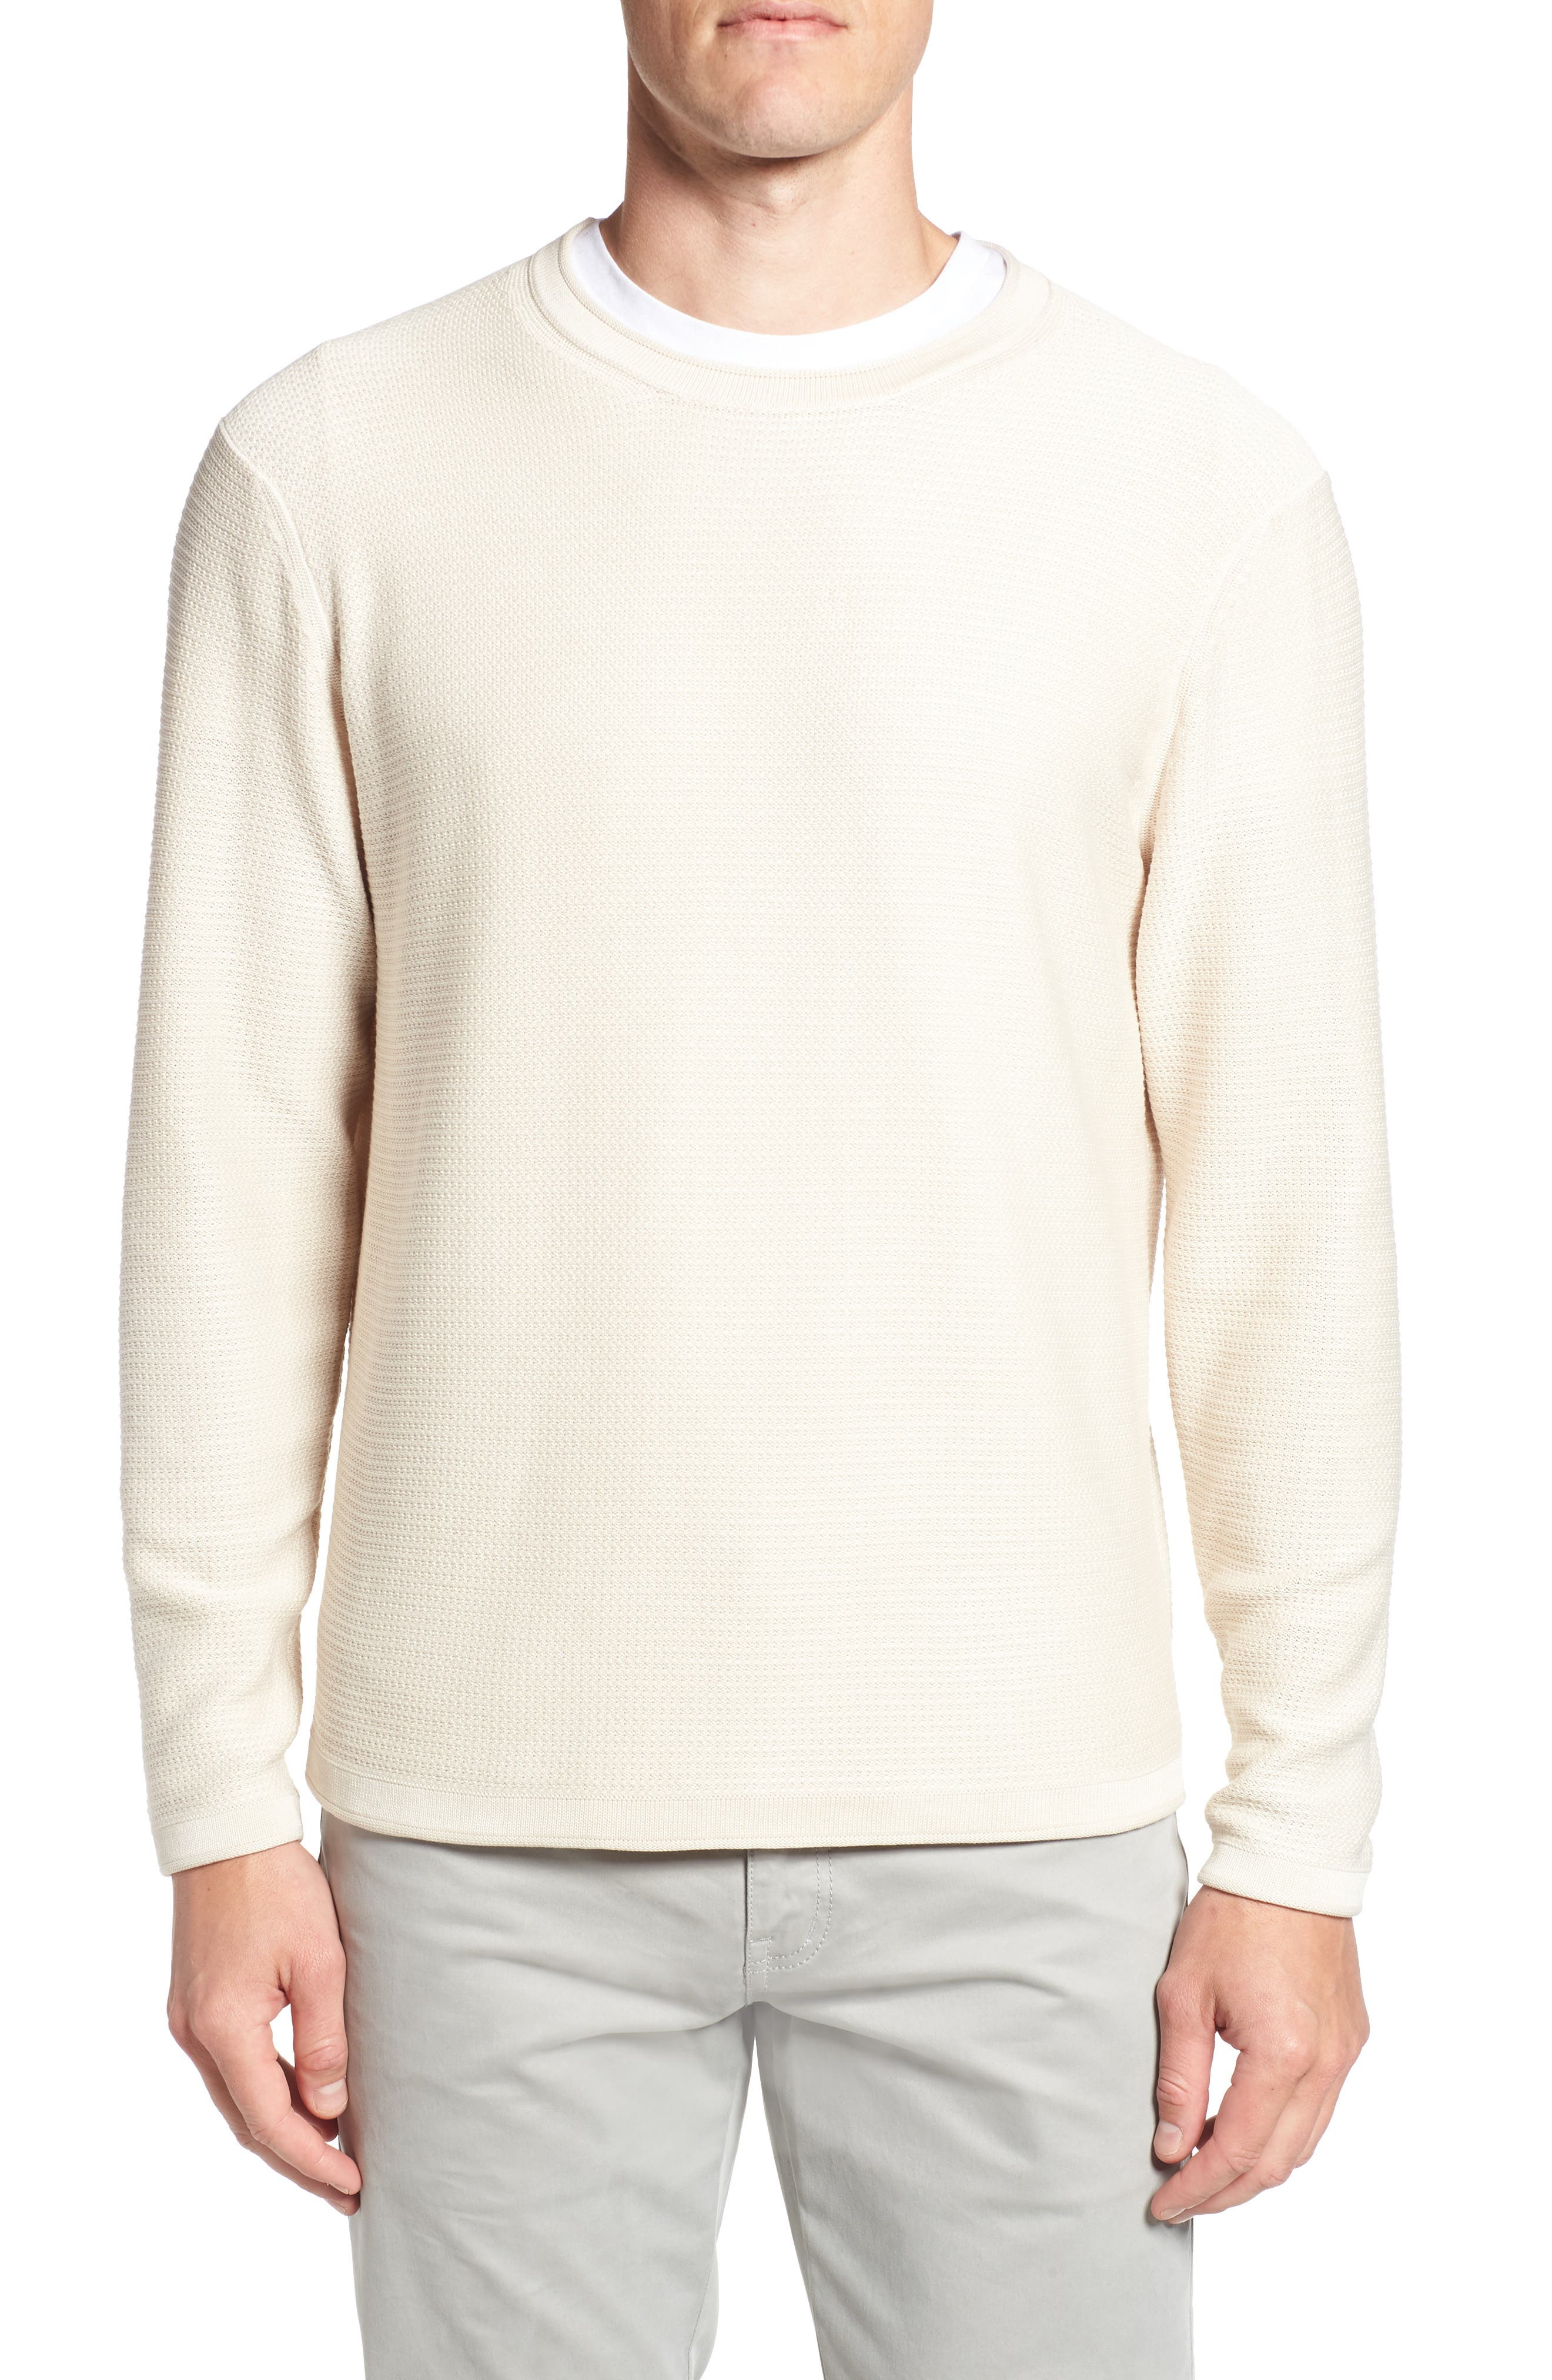 TOMMY BAHAMA,                             South Shore Flip Sweater,                             Alternate thumbnail 2, color,                             200